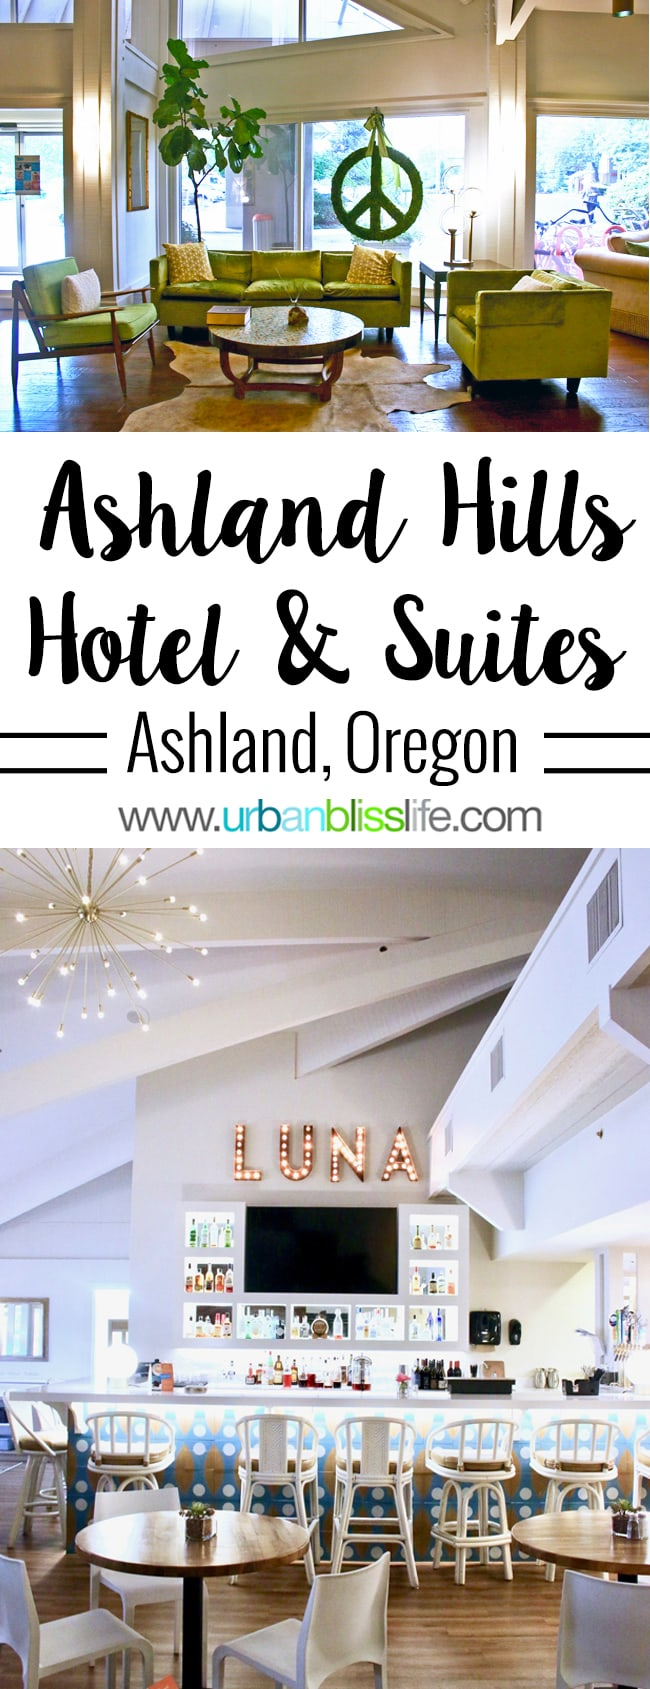 Ashland Hills Hotel and Suites hotel review and travel tips on UrbanBlissLife.com